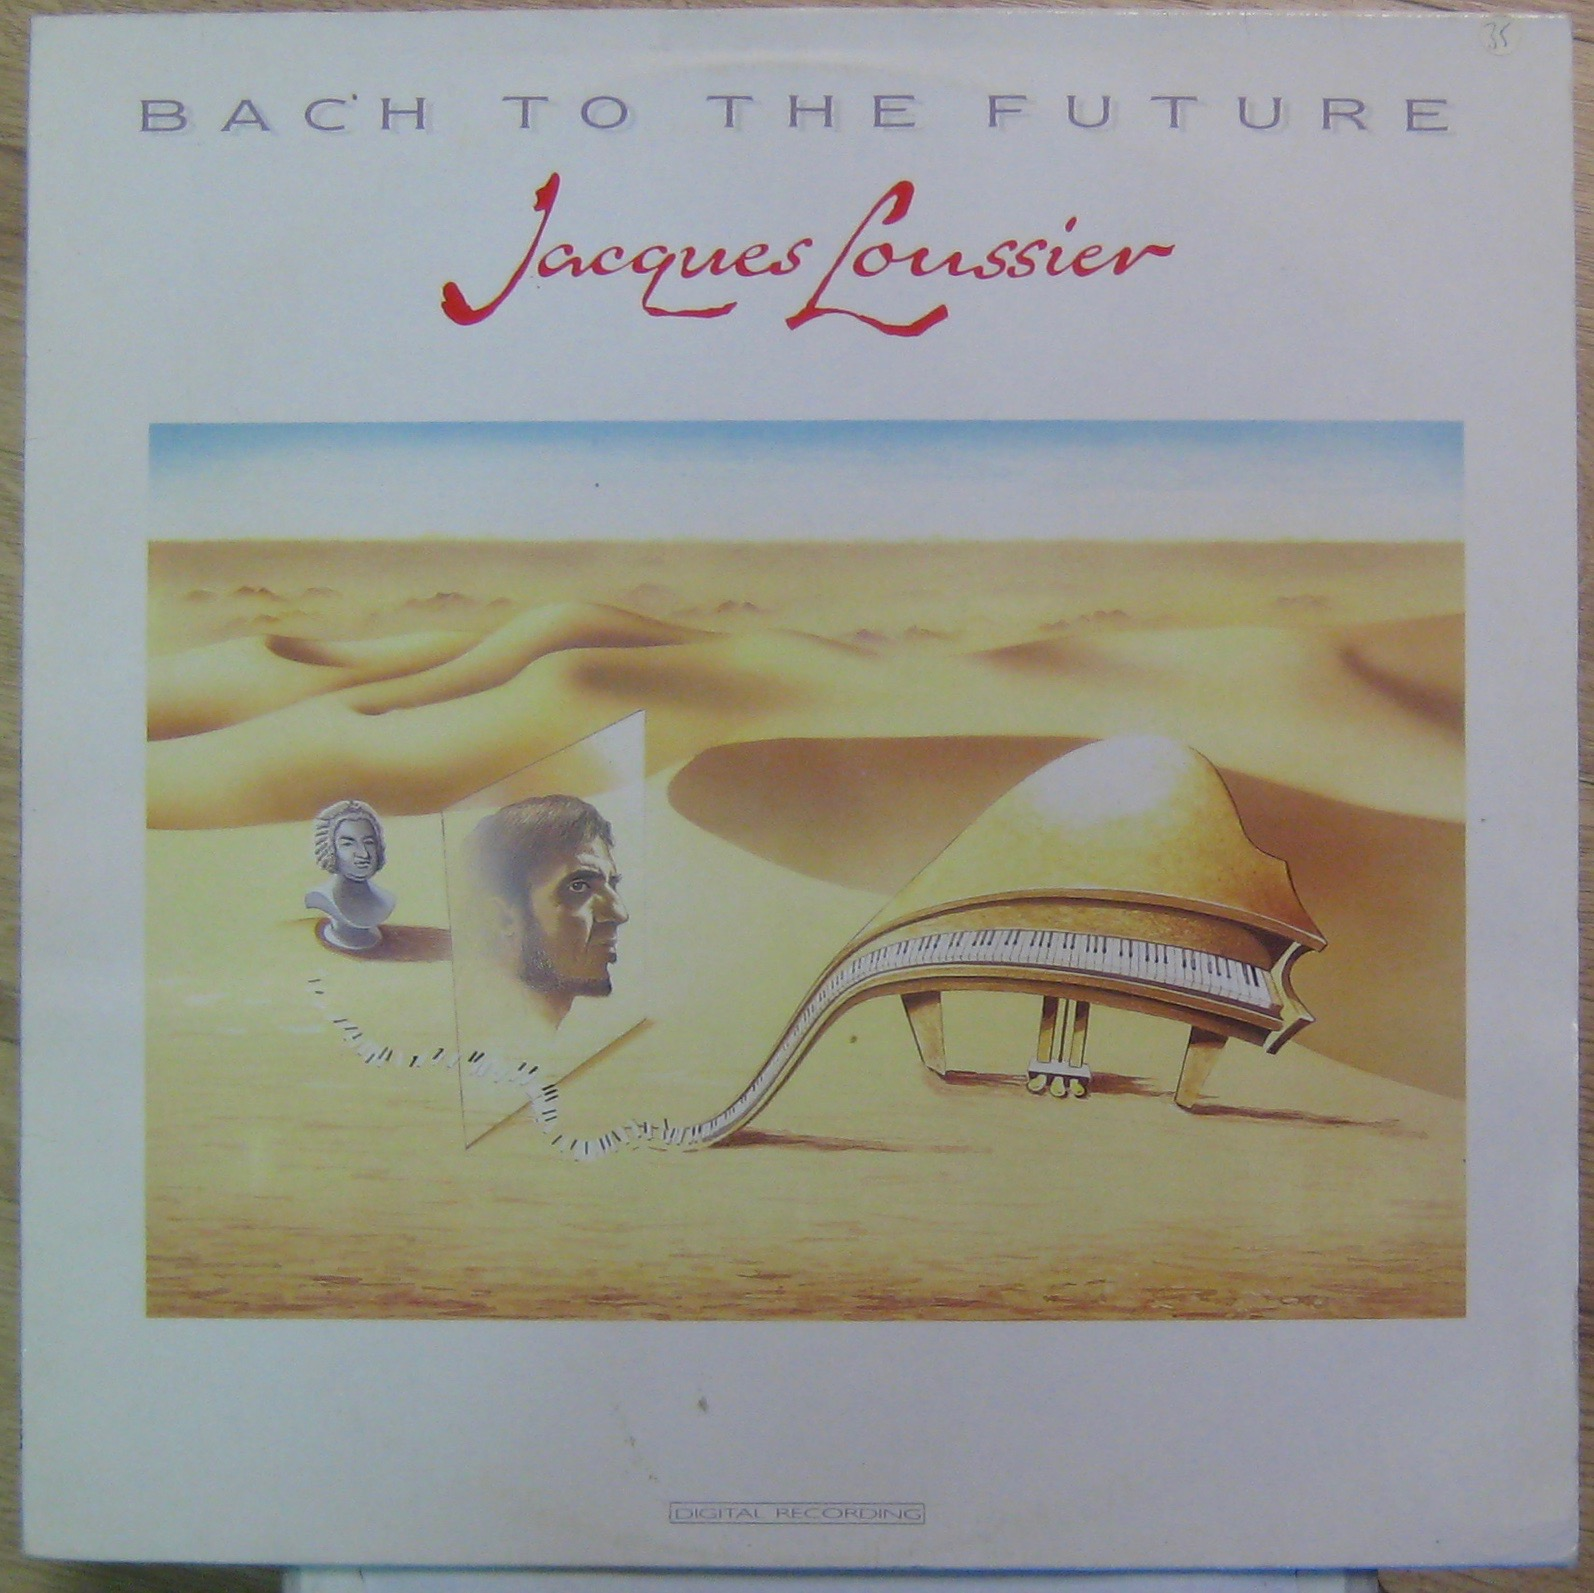 LOUSSIER JACQUES - Bach to the future - LP